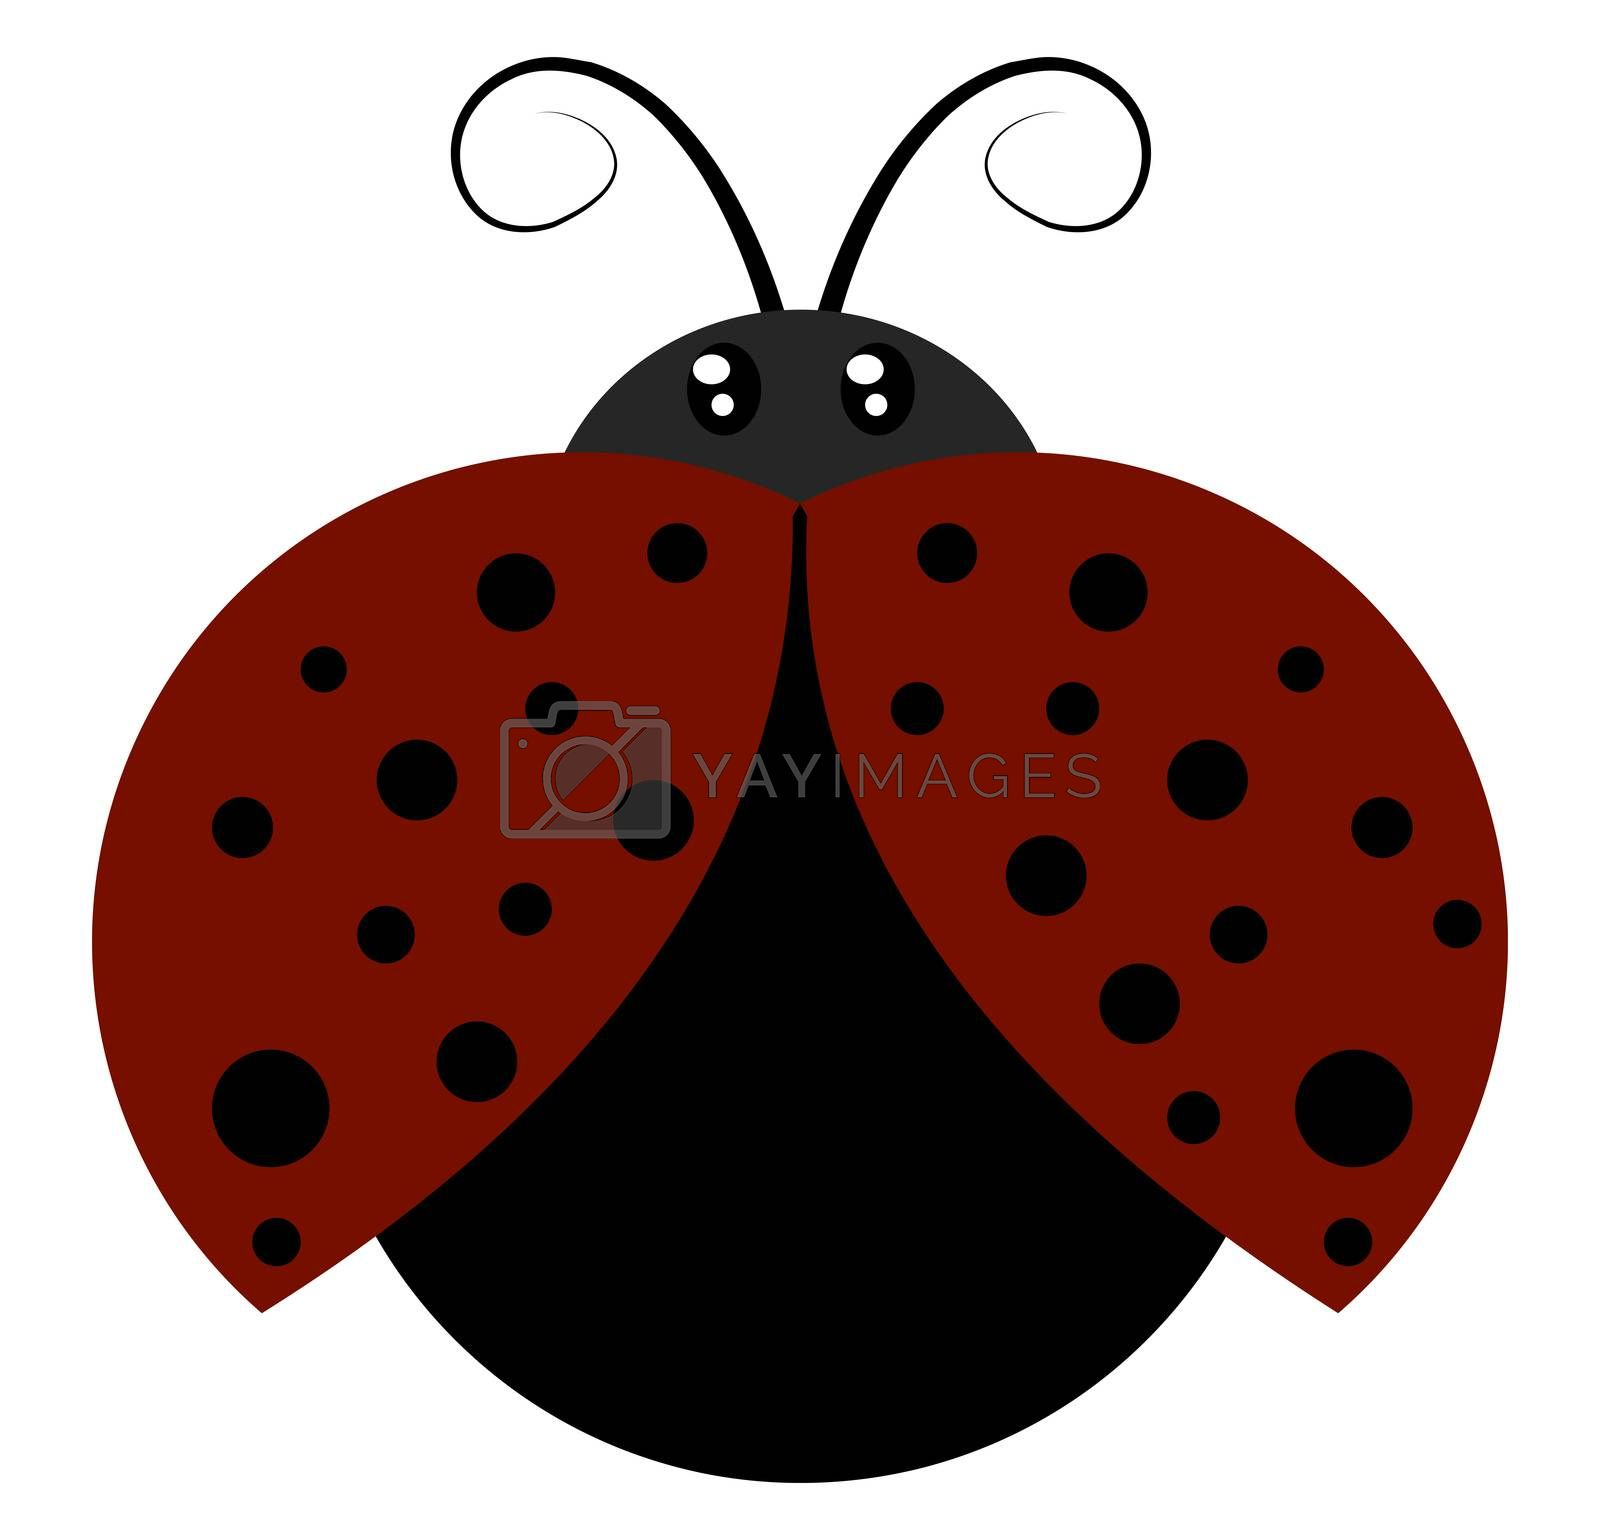 Flying ladybug, illustration, vector on white background